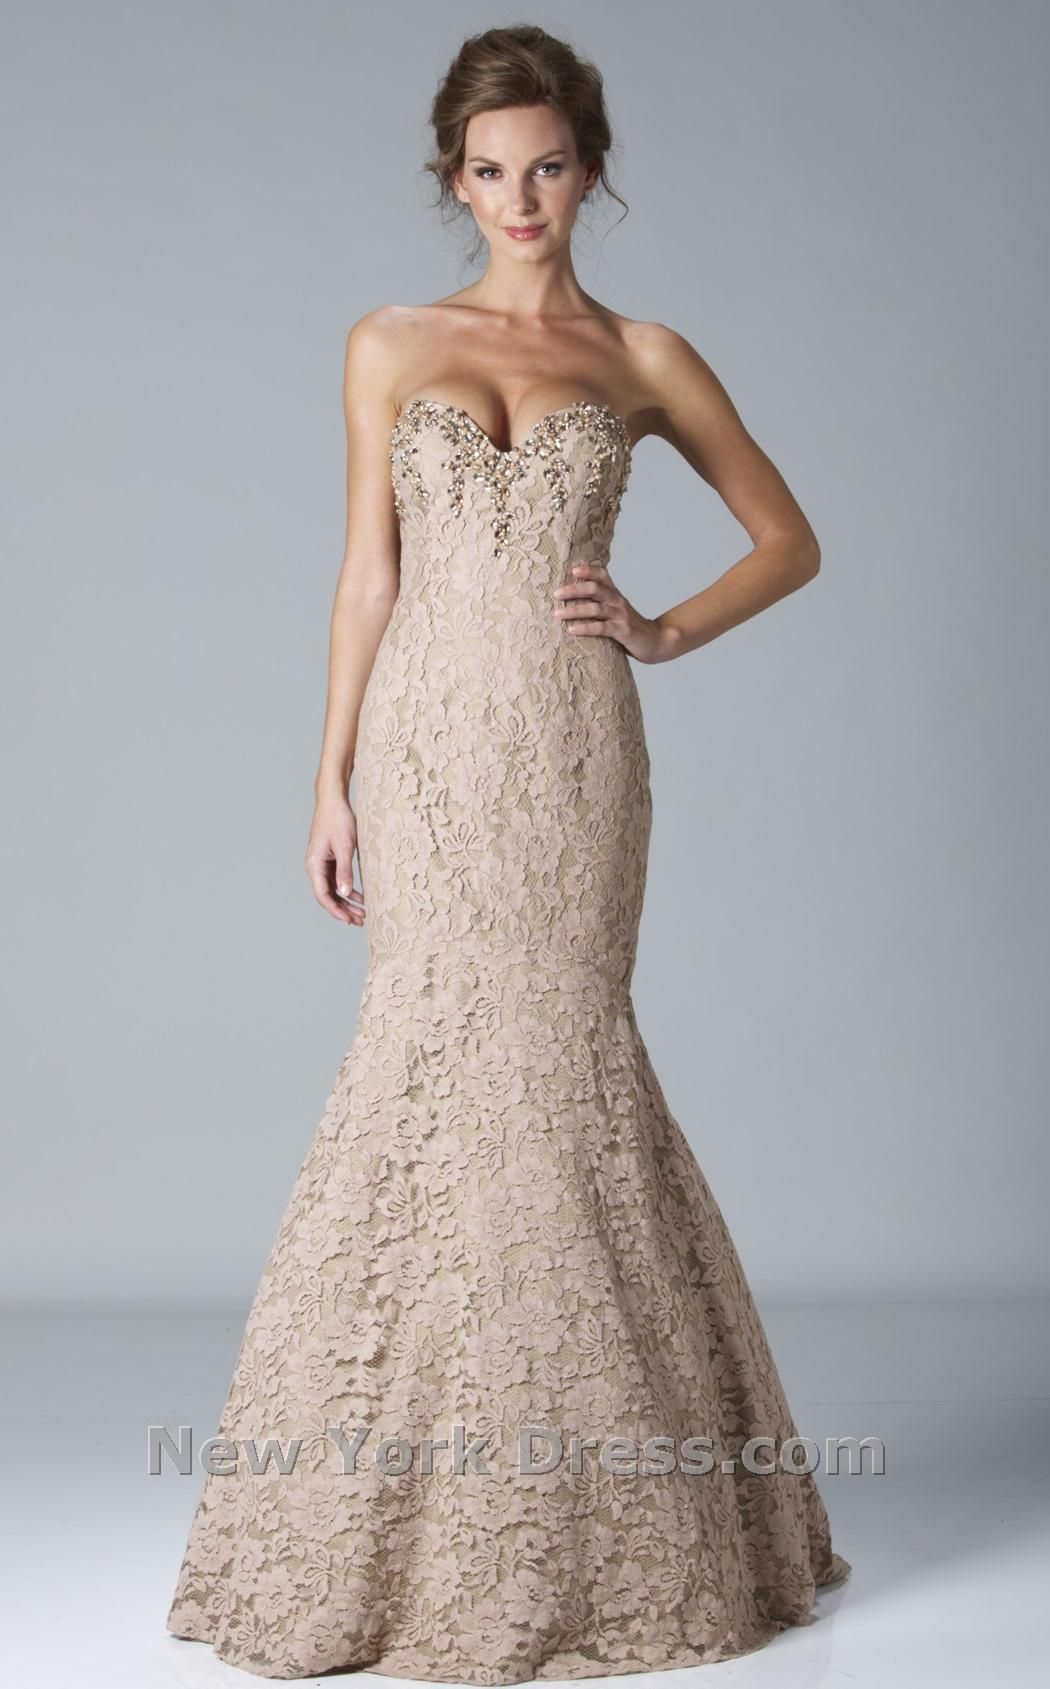 Janique dress jq romantic evening gowns and lace overlay